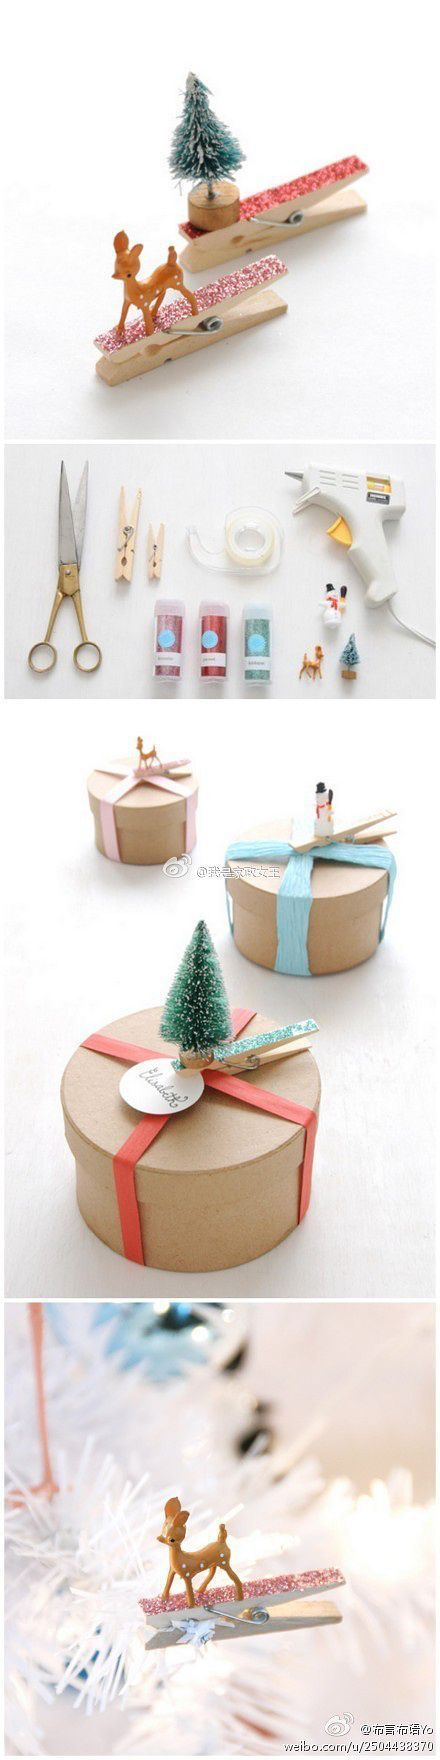 DIY Glittered Clothespin and Miniature Ornaments Gift Toppers - The BEST DIY Gift Toppers - Pretty and EASY Inexpensive Handmade Ideas for Christmas, Birthdays, Holidays and any special occasion!